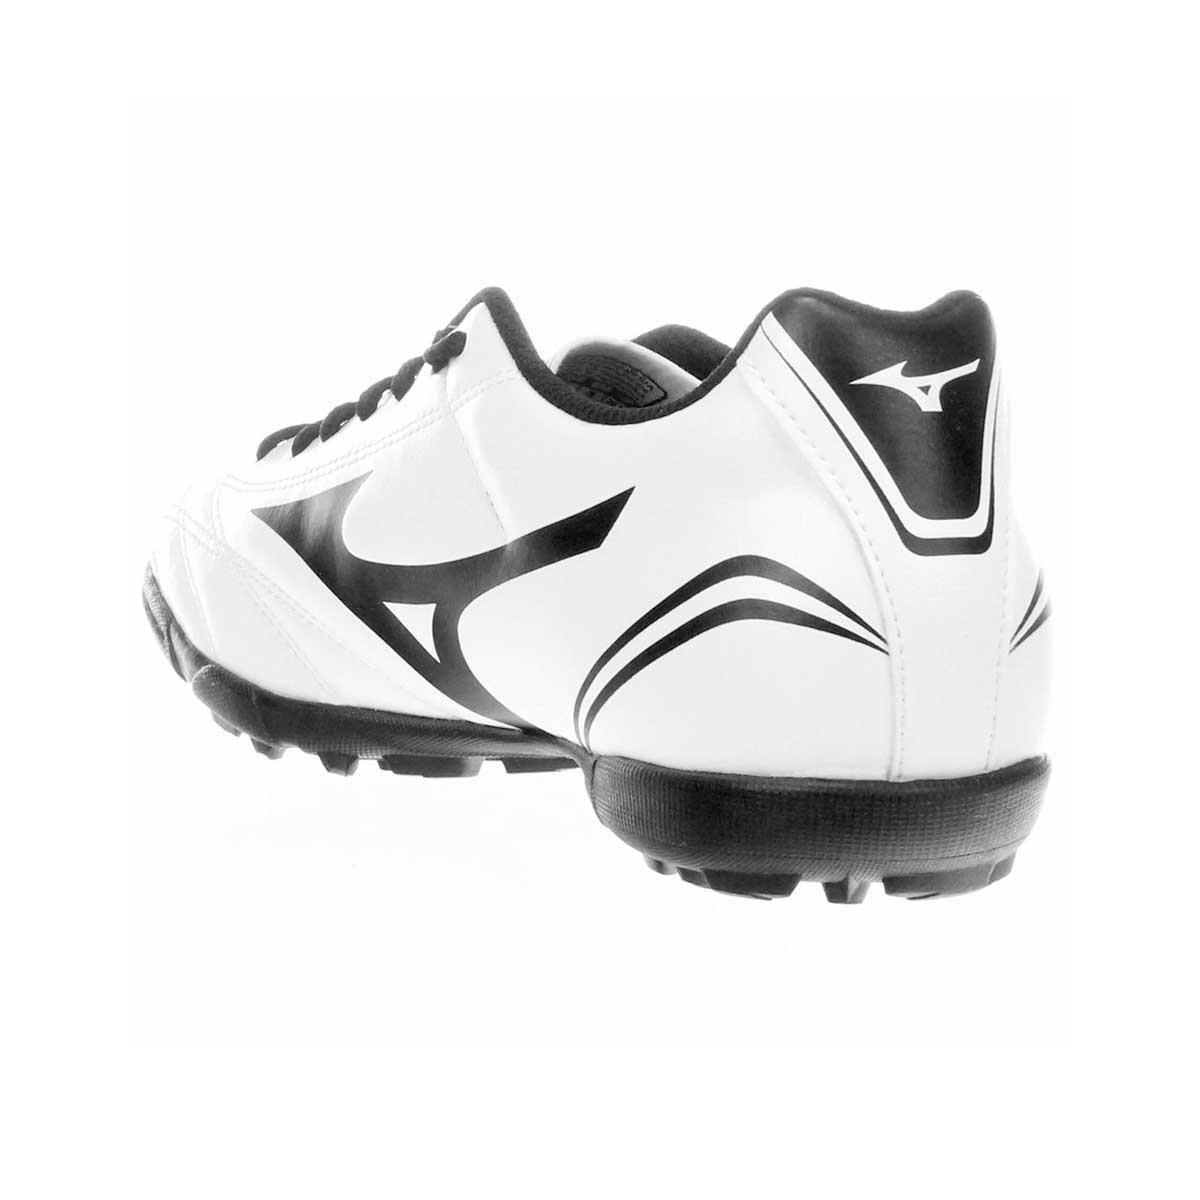 977fc1d19e7e1 Chuteira Mizuno Morelia Neo Club AS Society